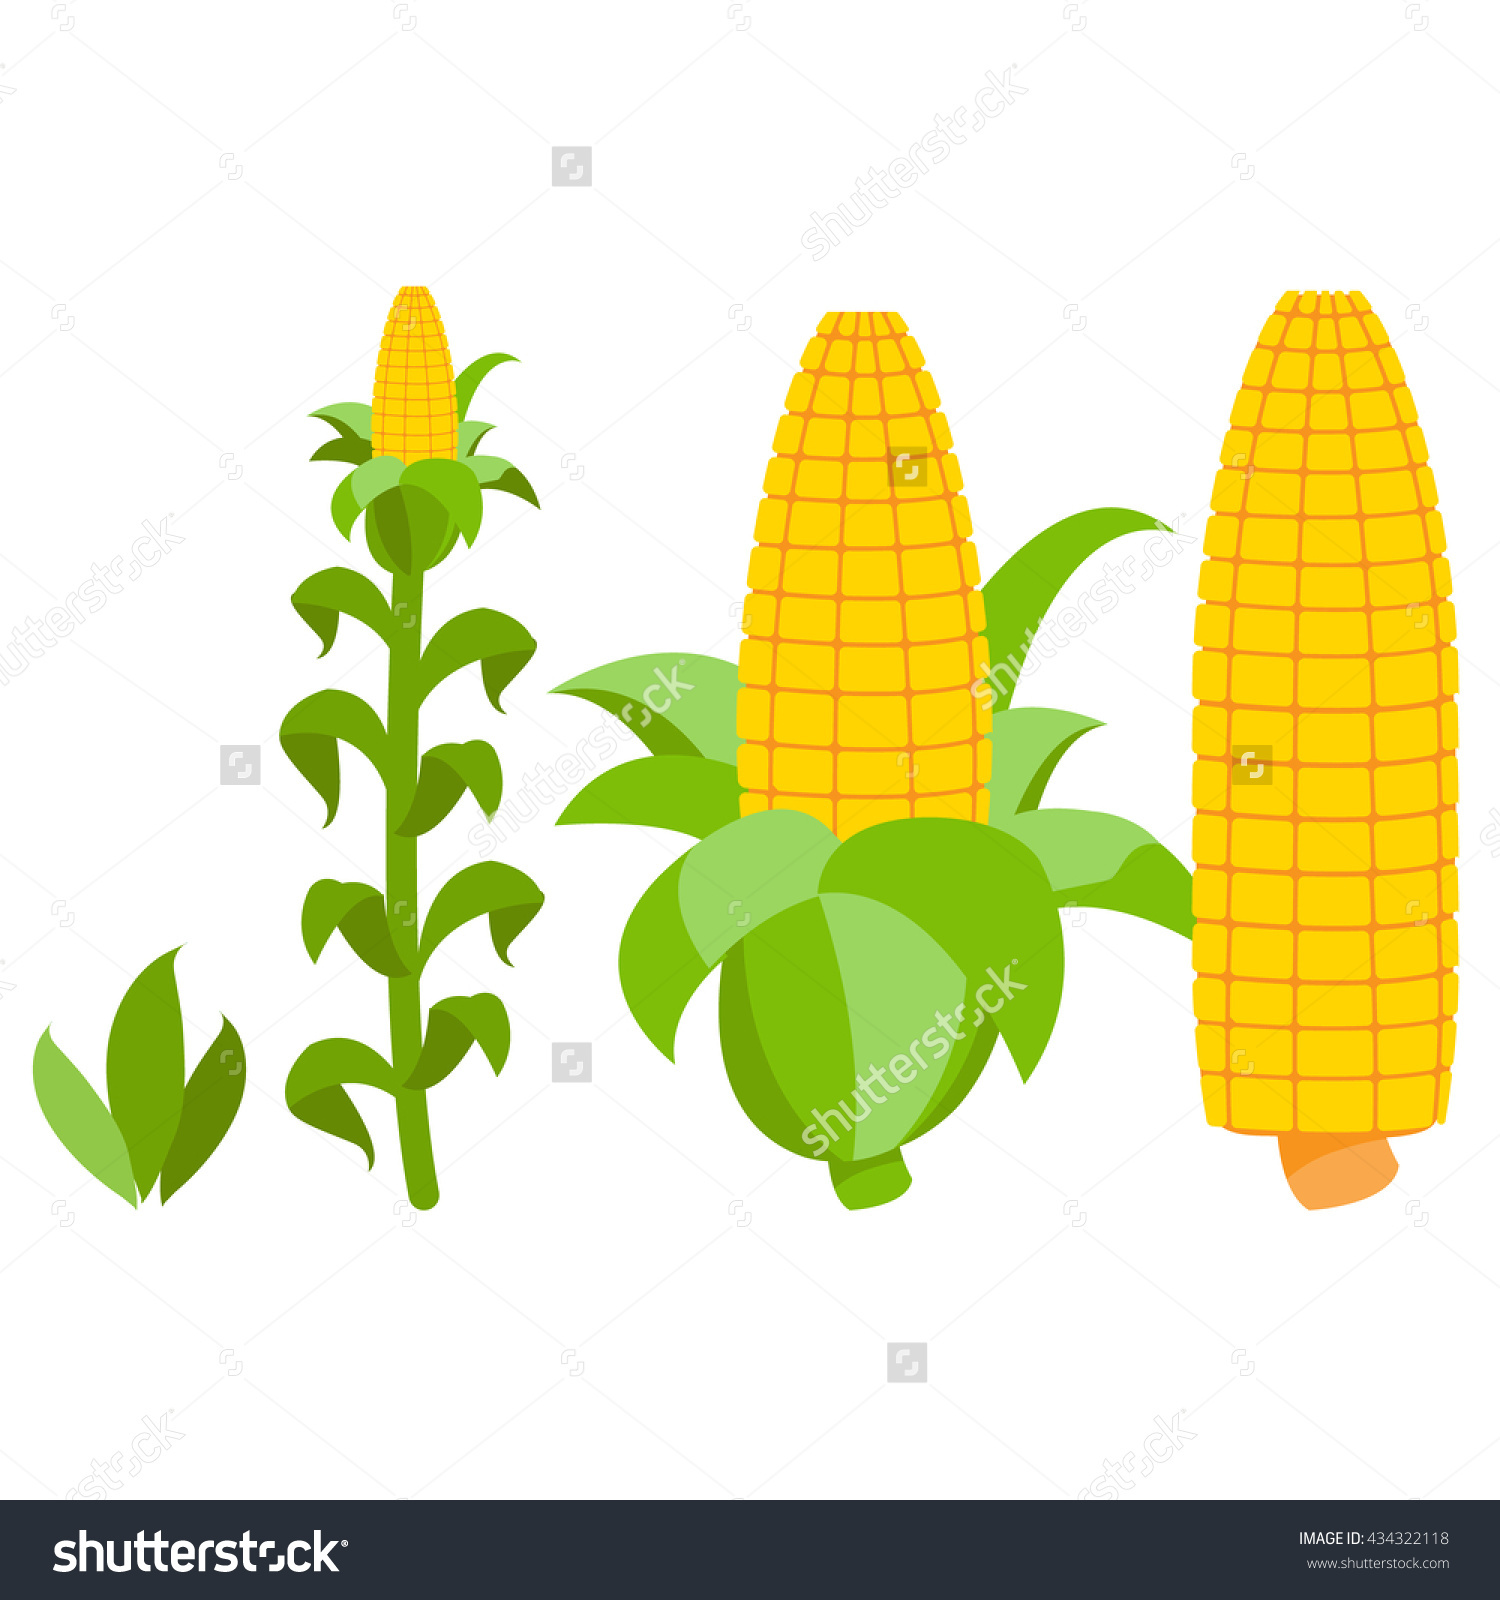 Corn Growth Stages Sprout Adult Plant Stock Vector 434322118.